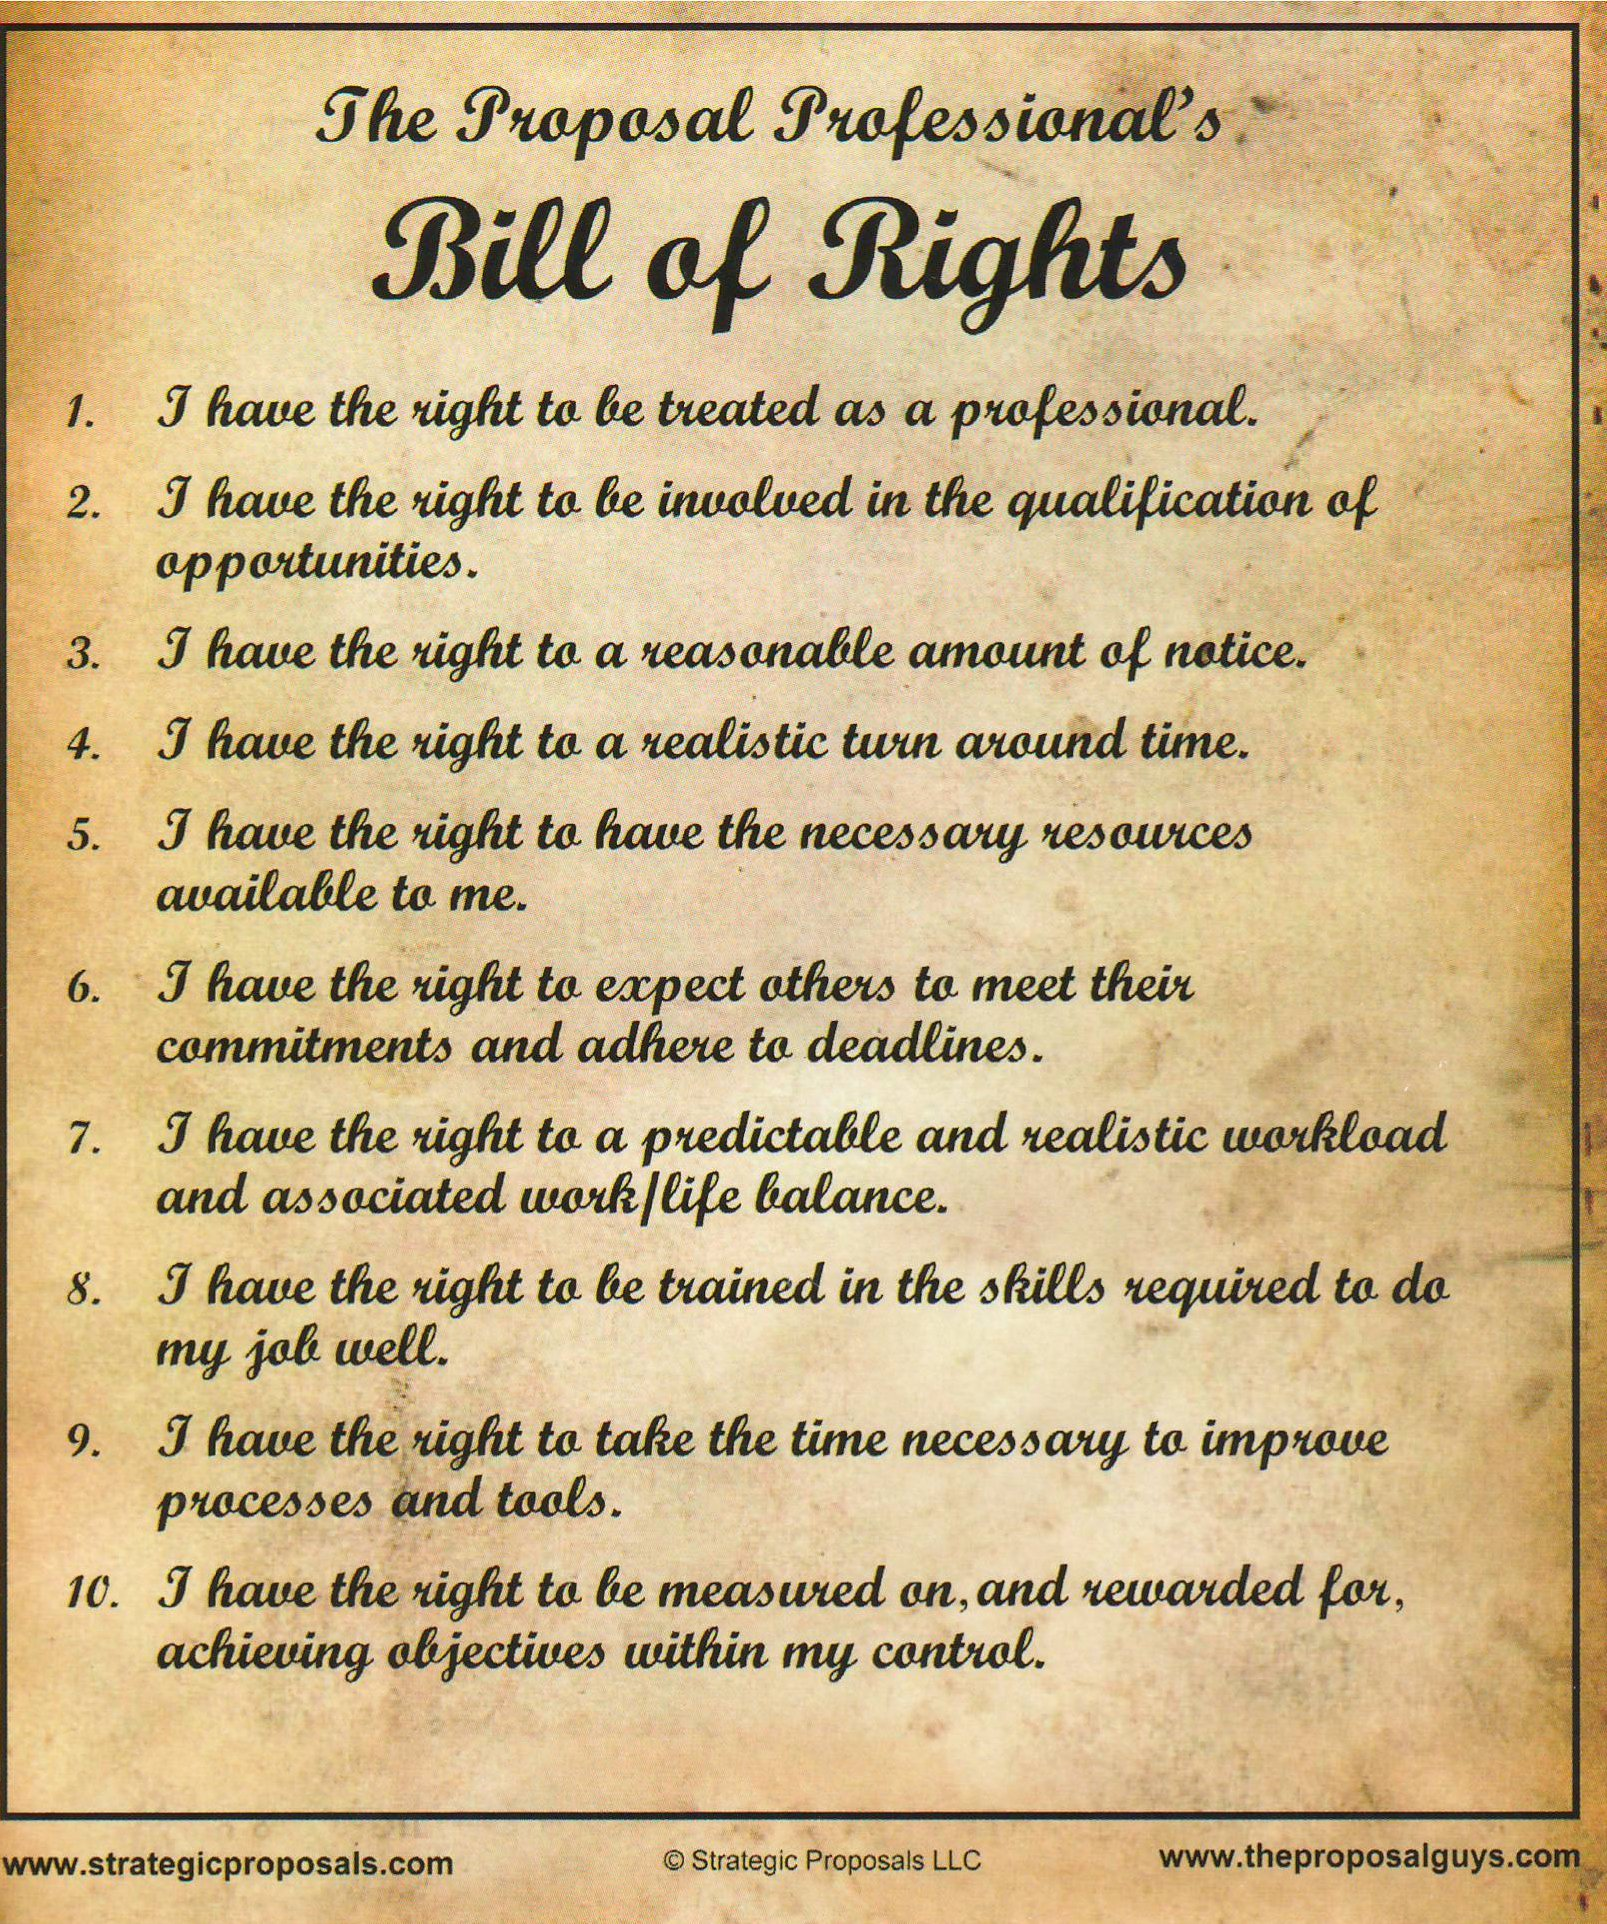 the bill of rights and me essay Essay on the bill of rights - reliable homework writing assistance - get help with custom essays, research papers, reviews and proposals for.